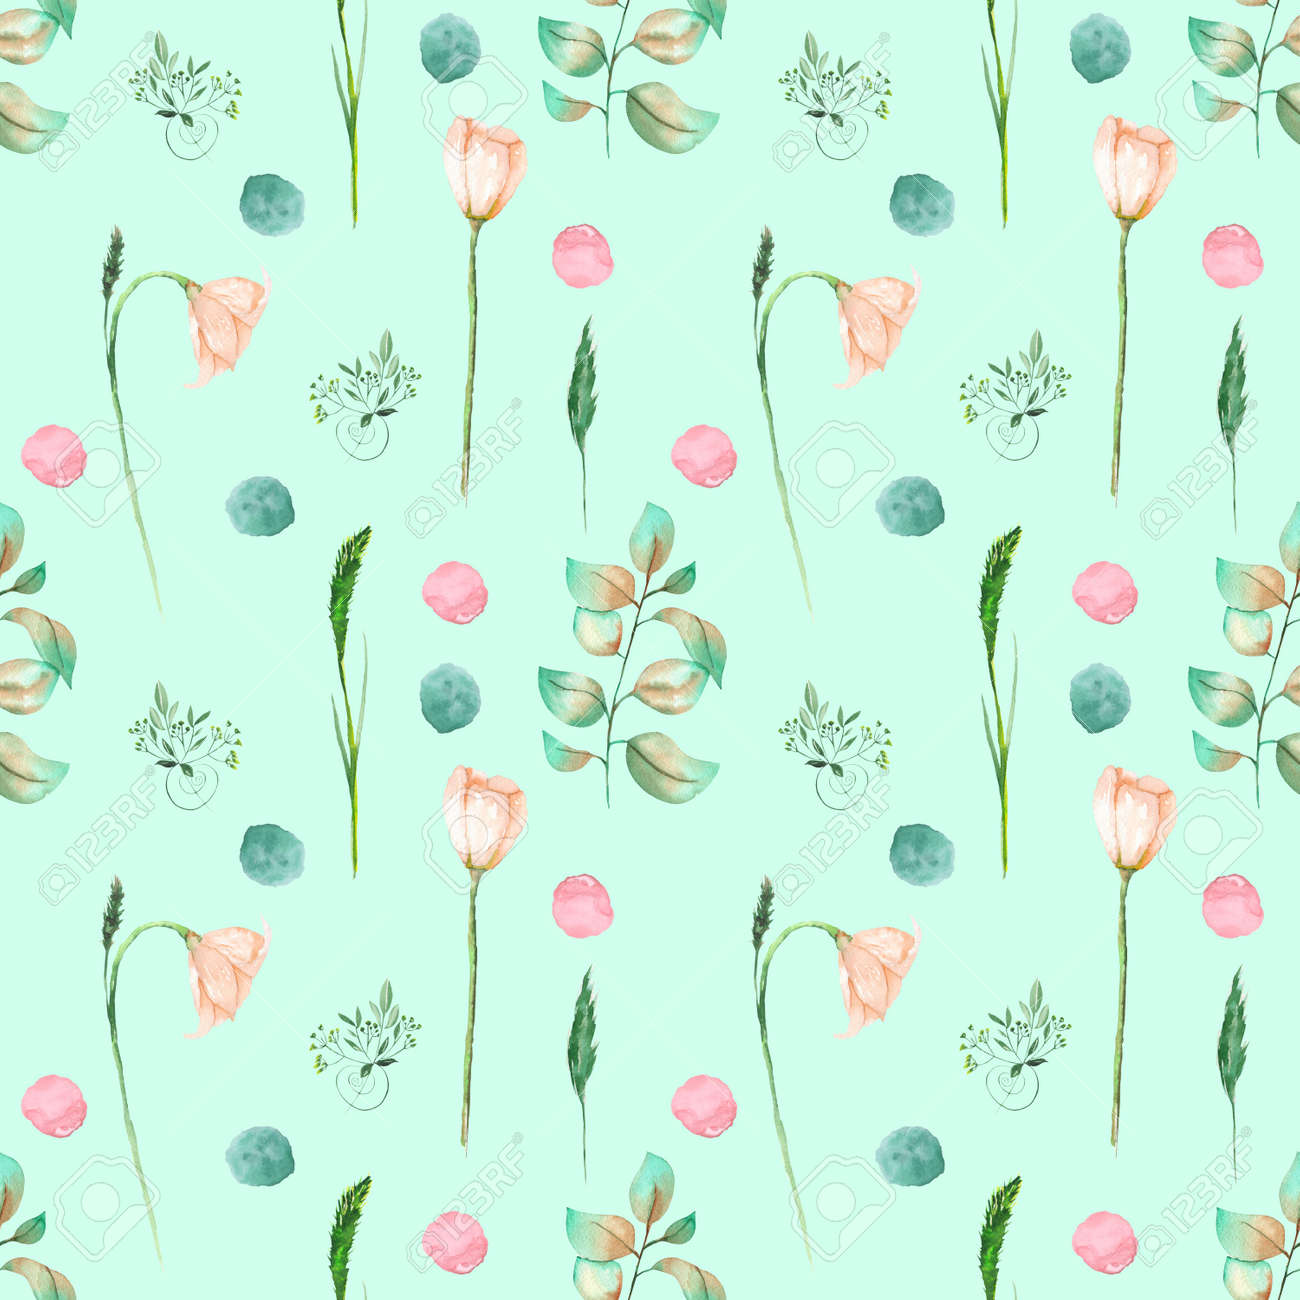 Seamless Floral Pattern With Pink Flowers And Floral Elements